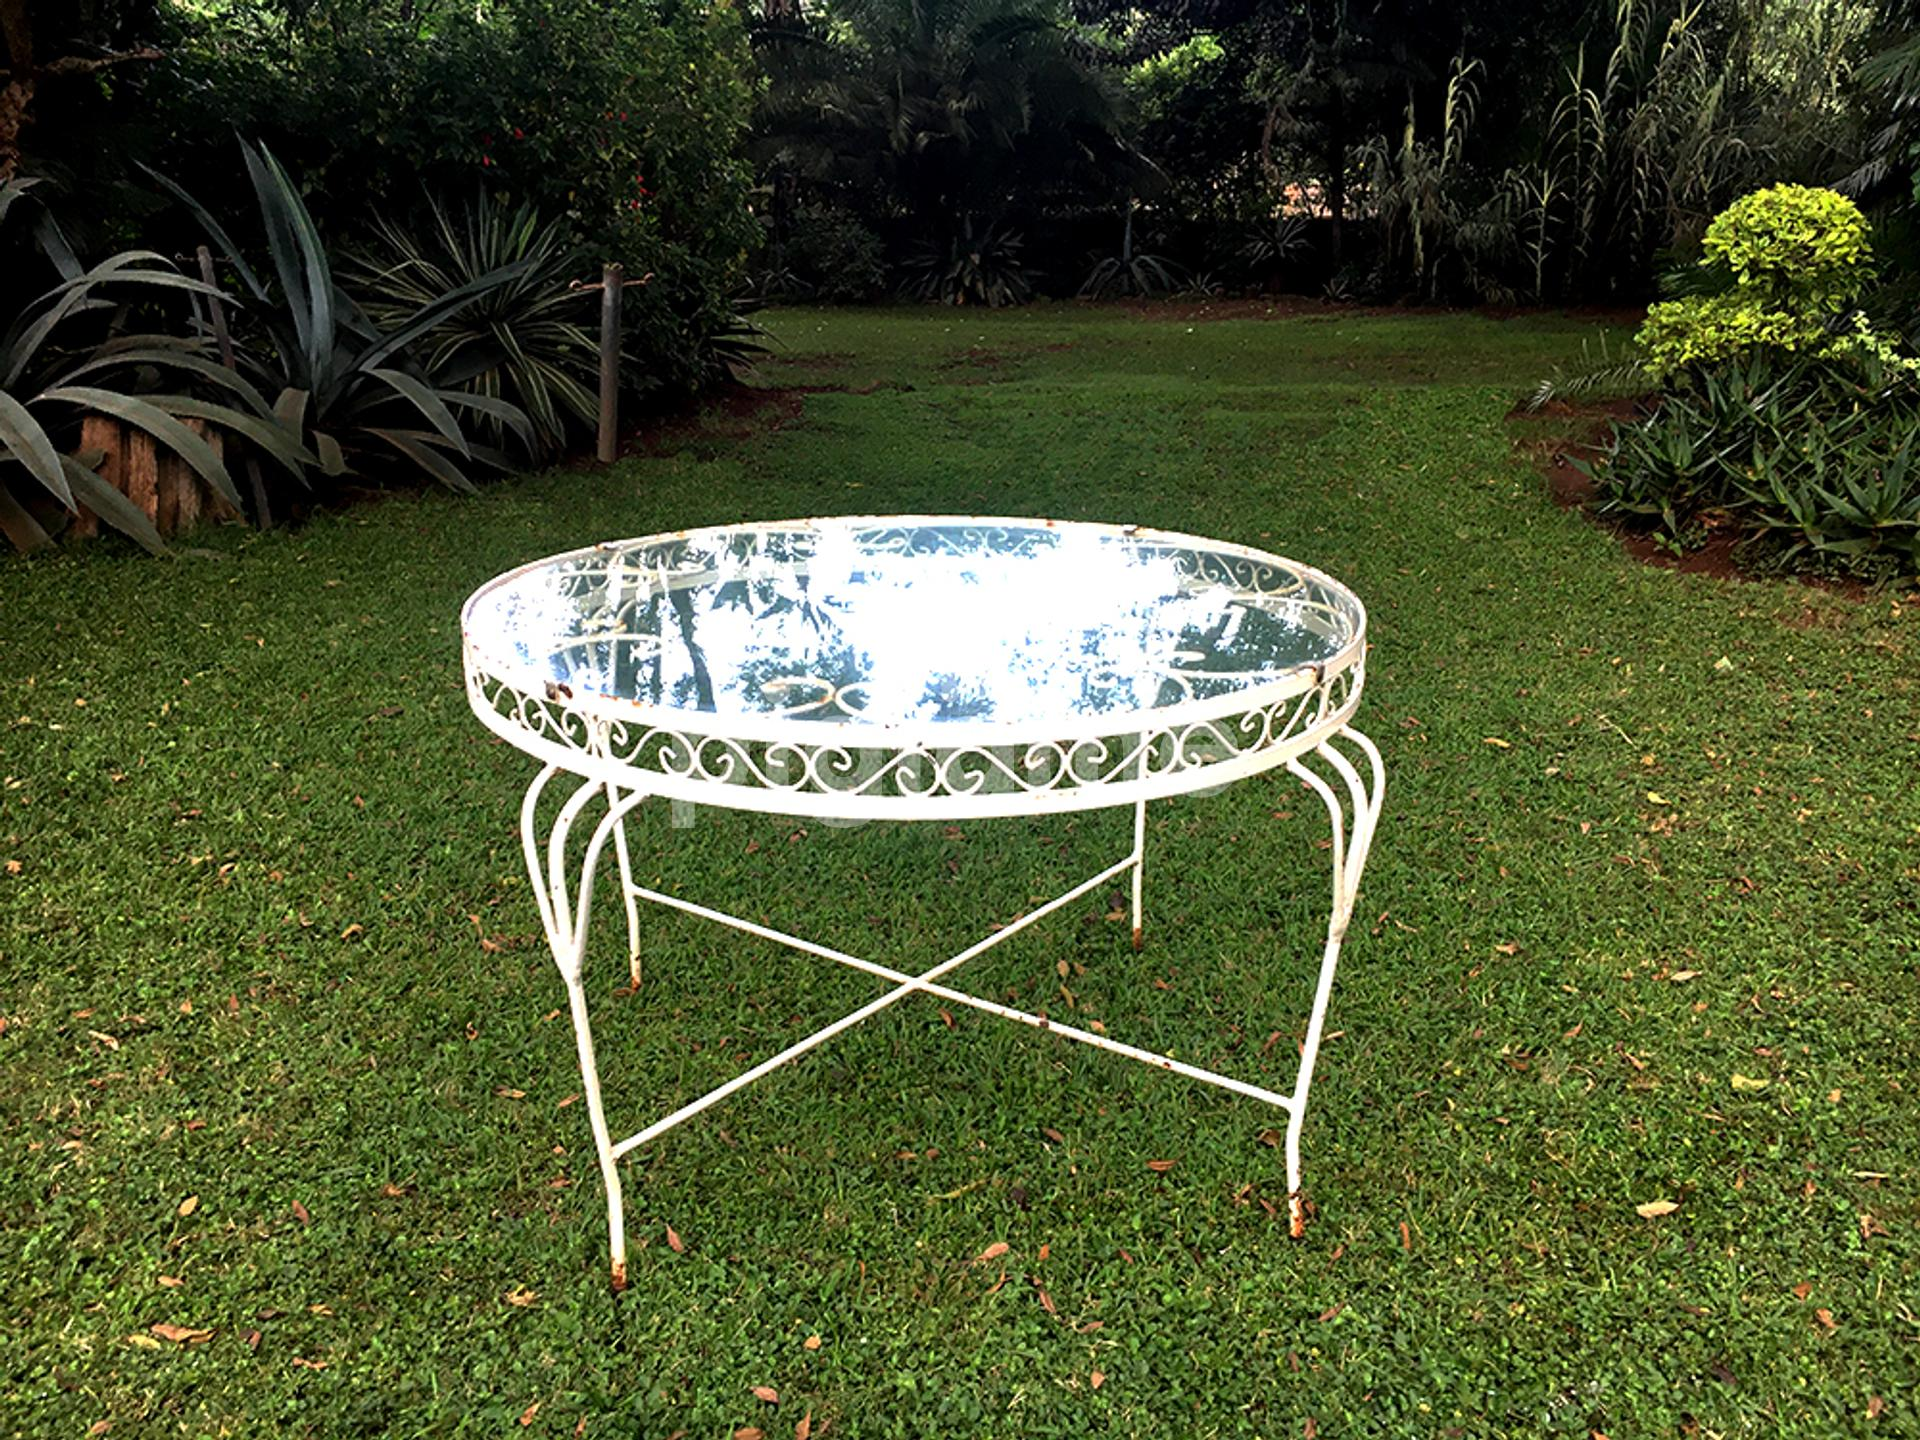 Antique Wrought Iron Garden White French Style Round Glass Dining Table With Intricate Lattice Seats Up To 6 Pigiame